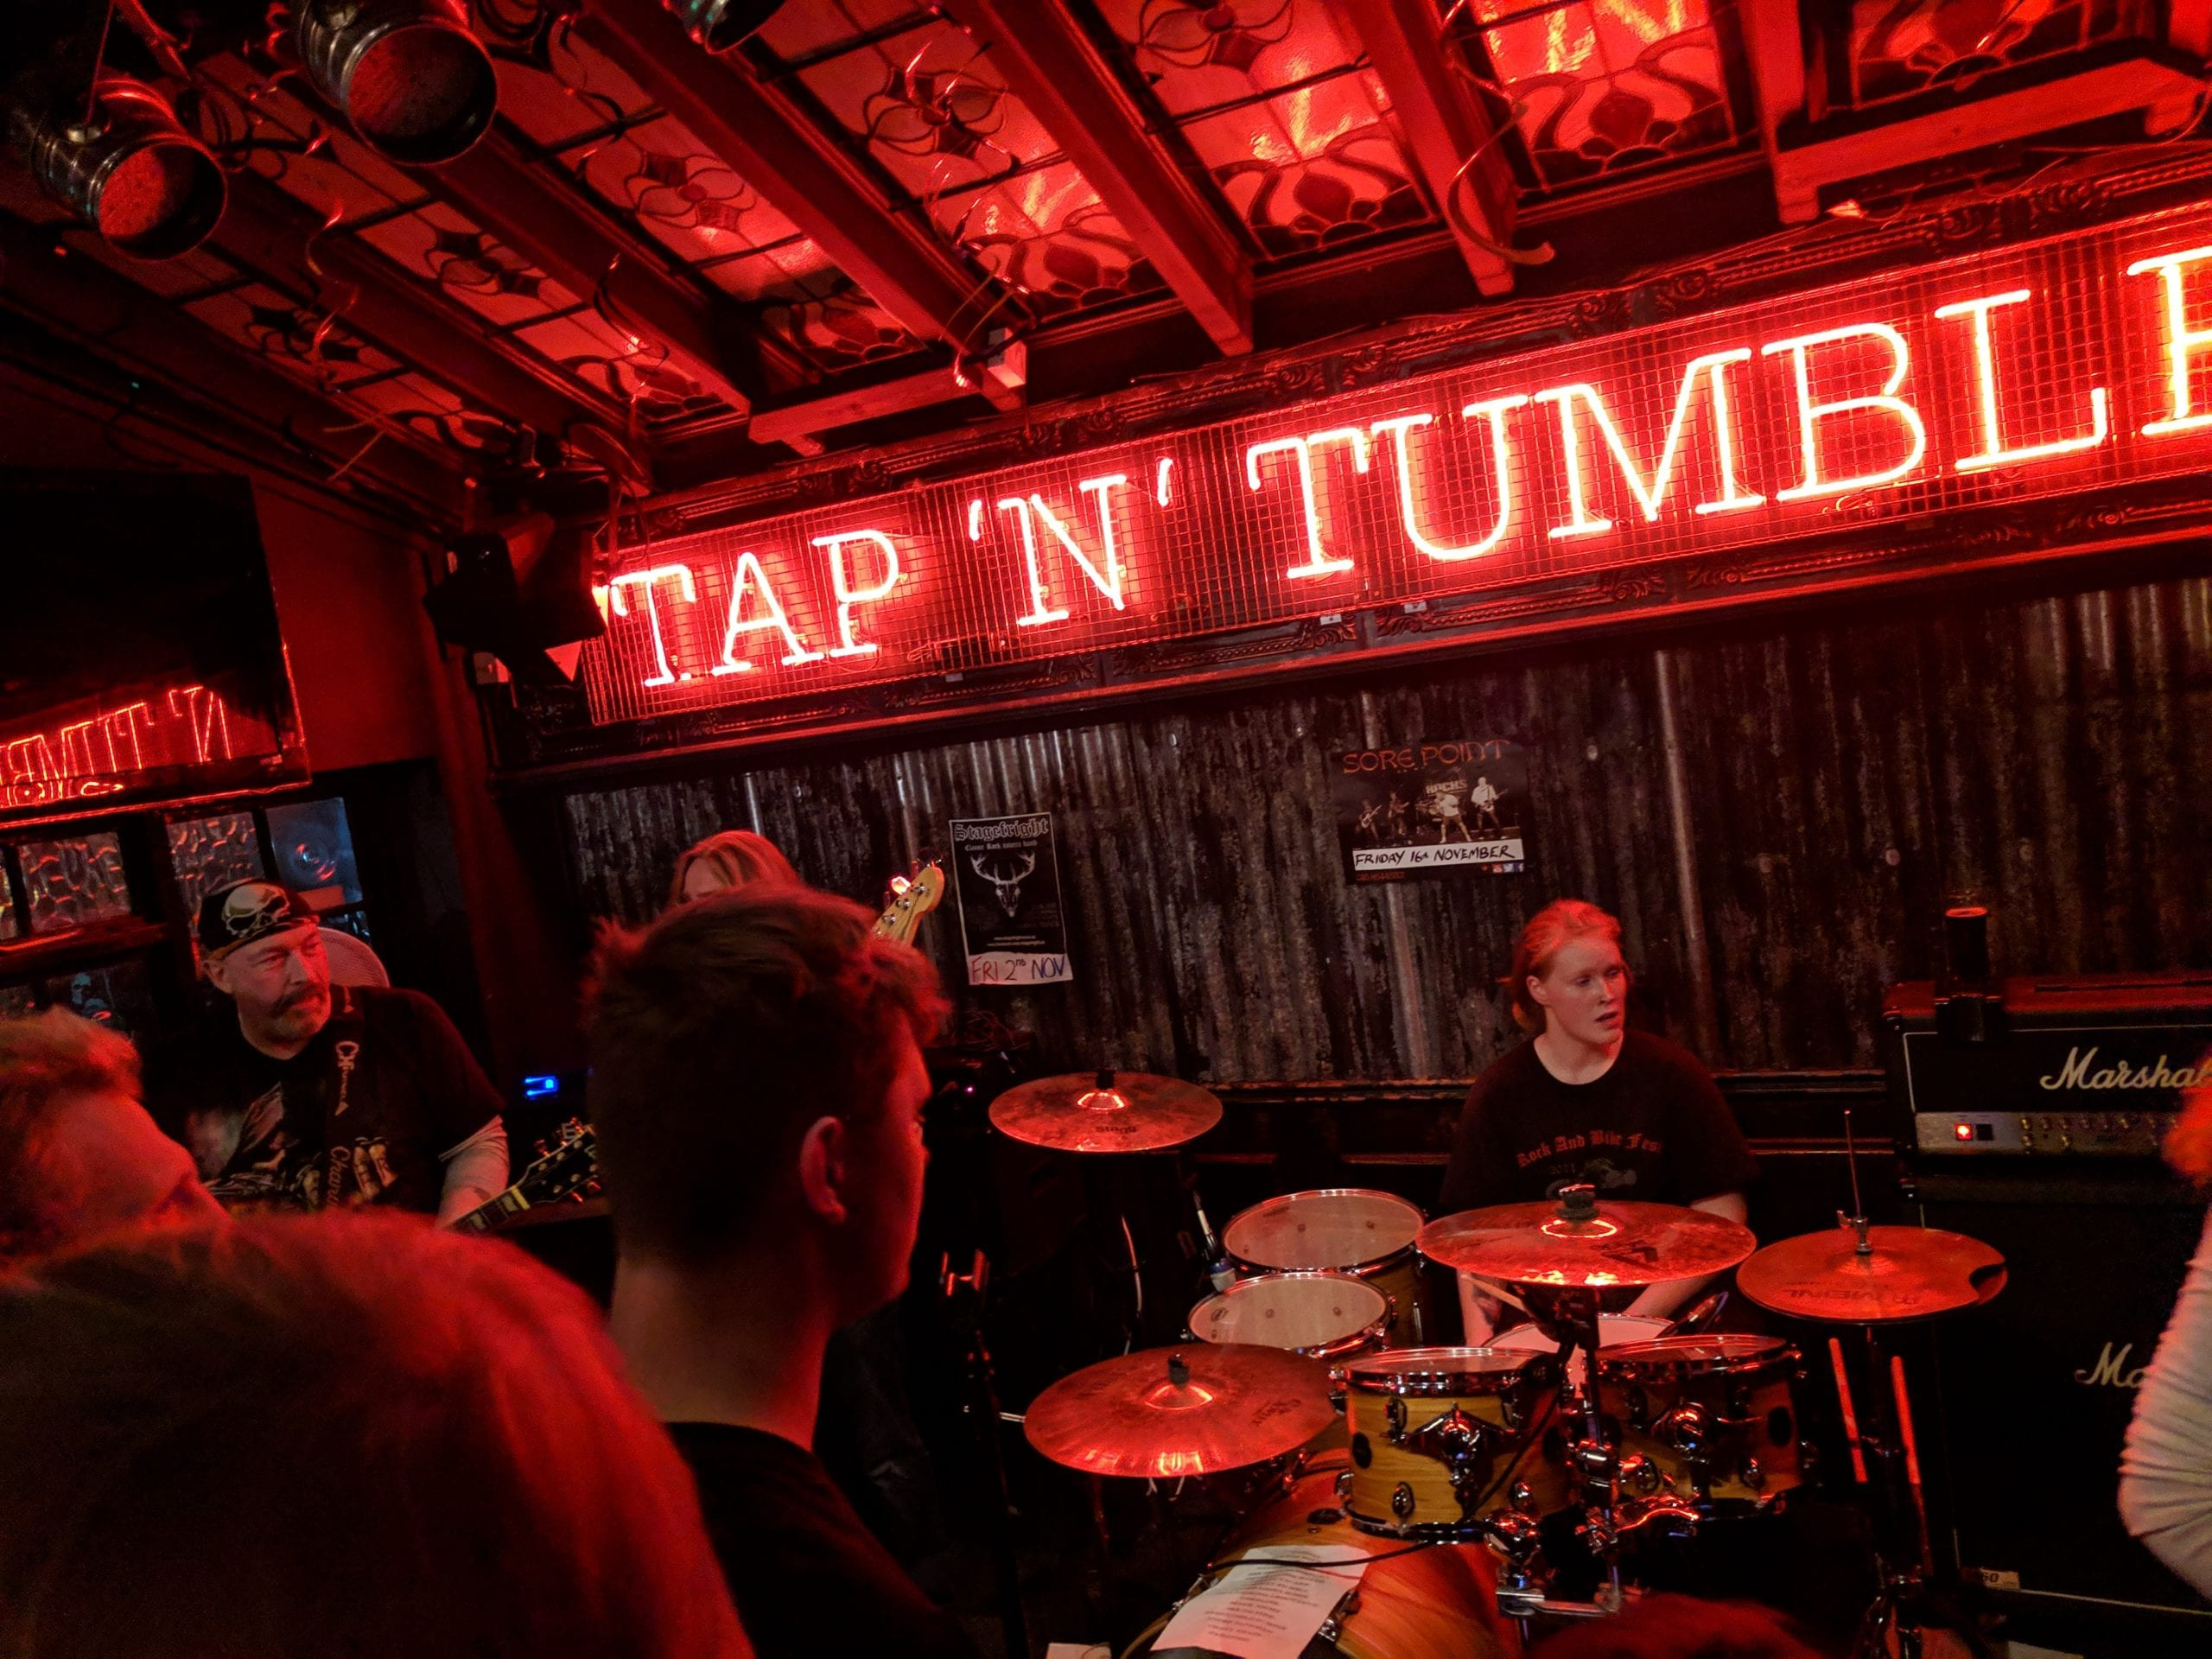 The famous Tap'n'Tumber iconic pub